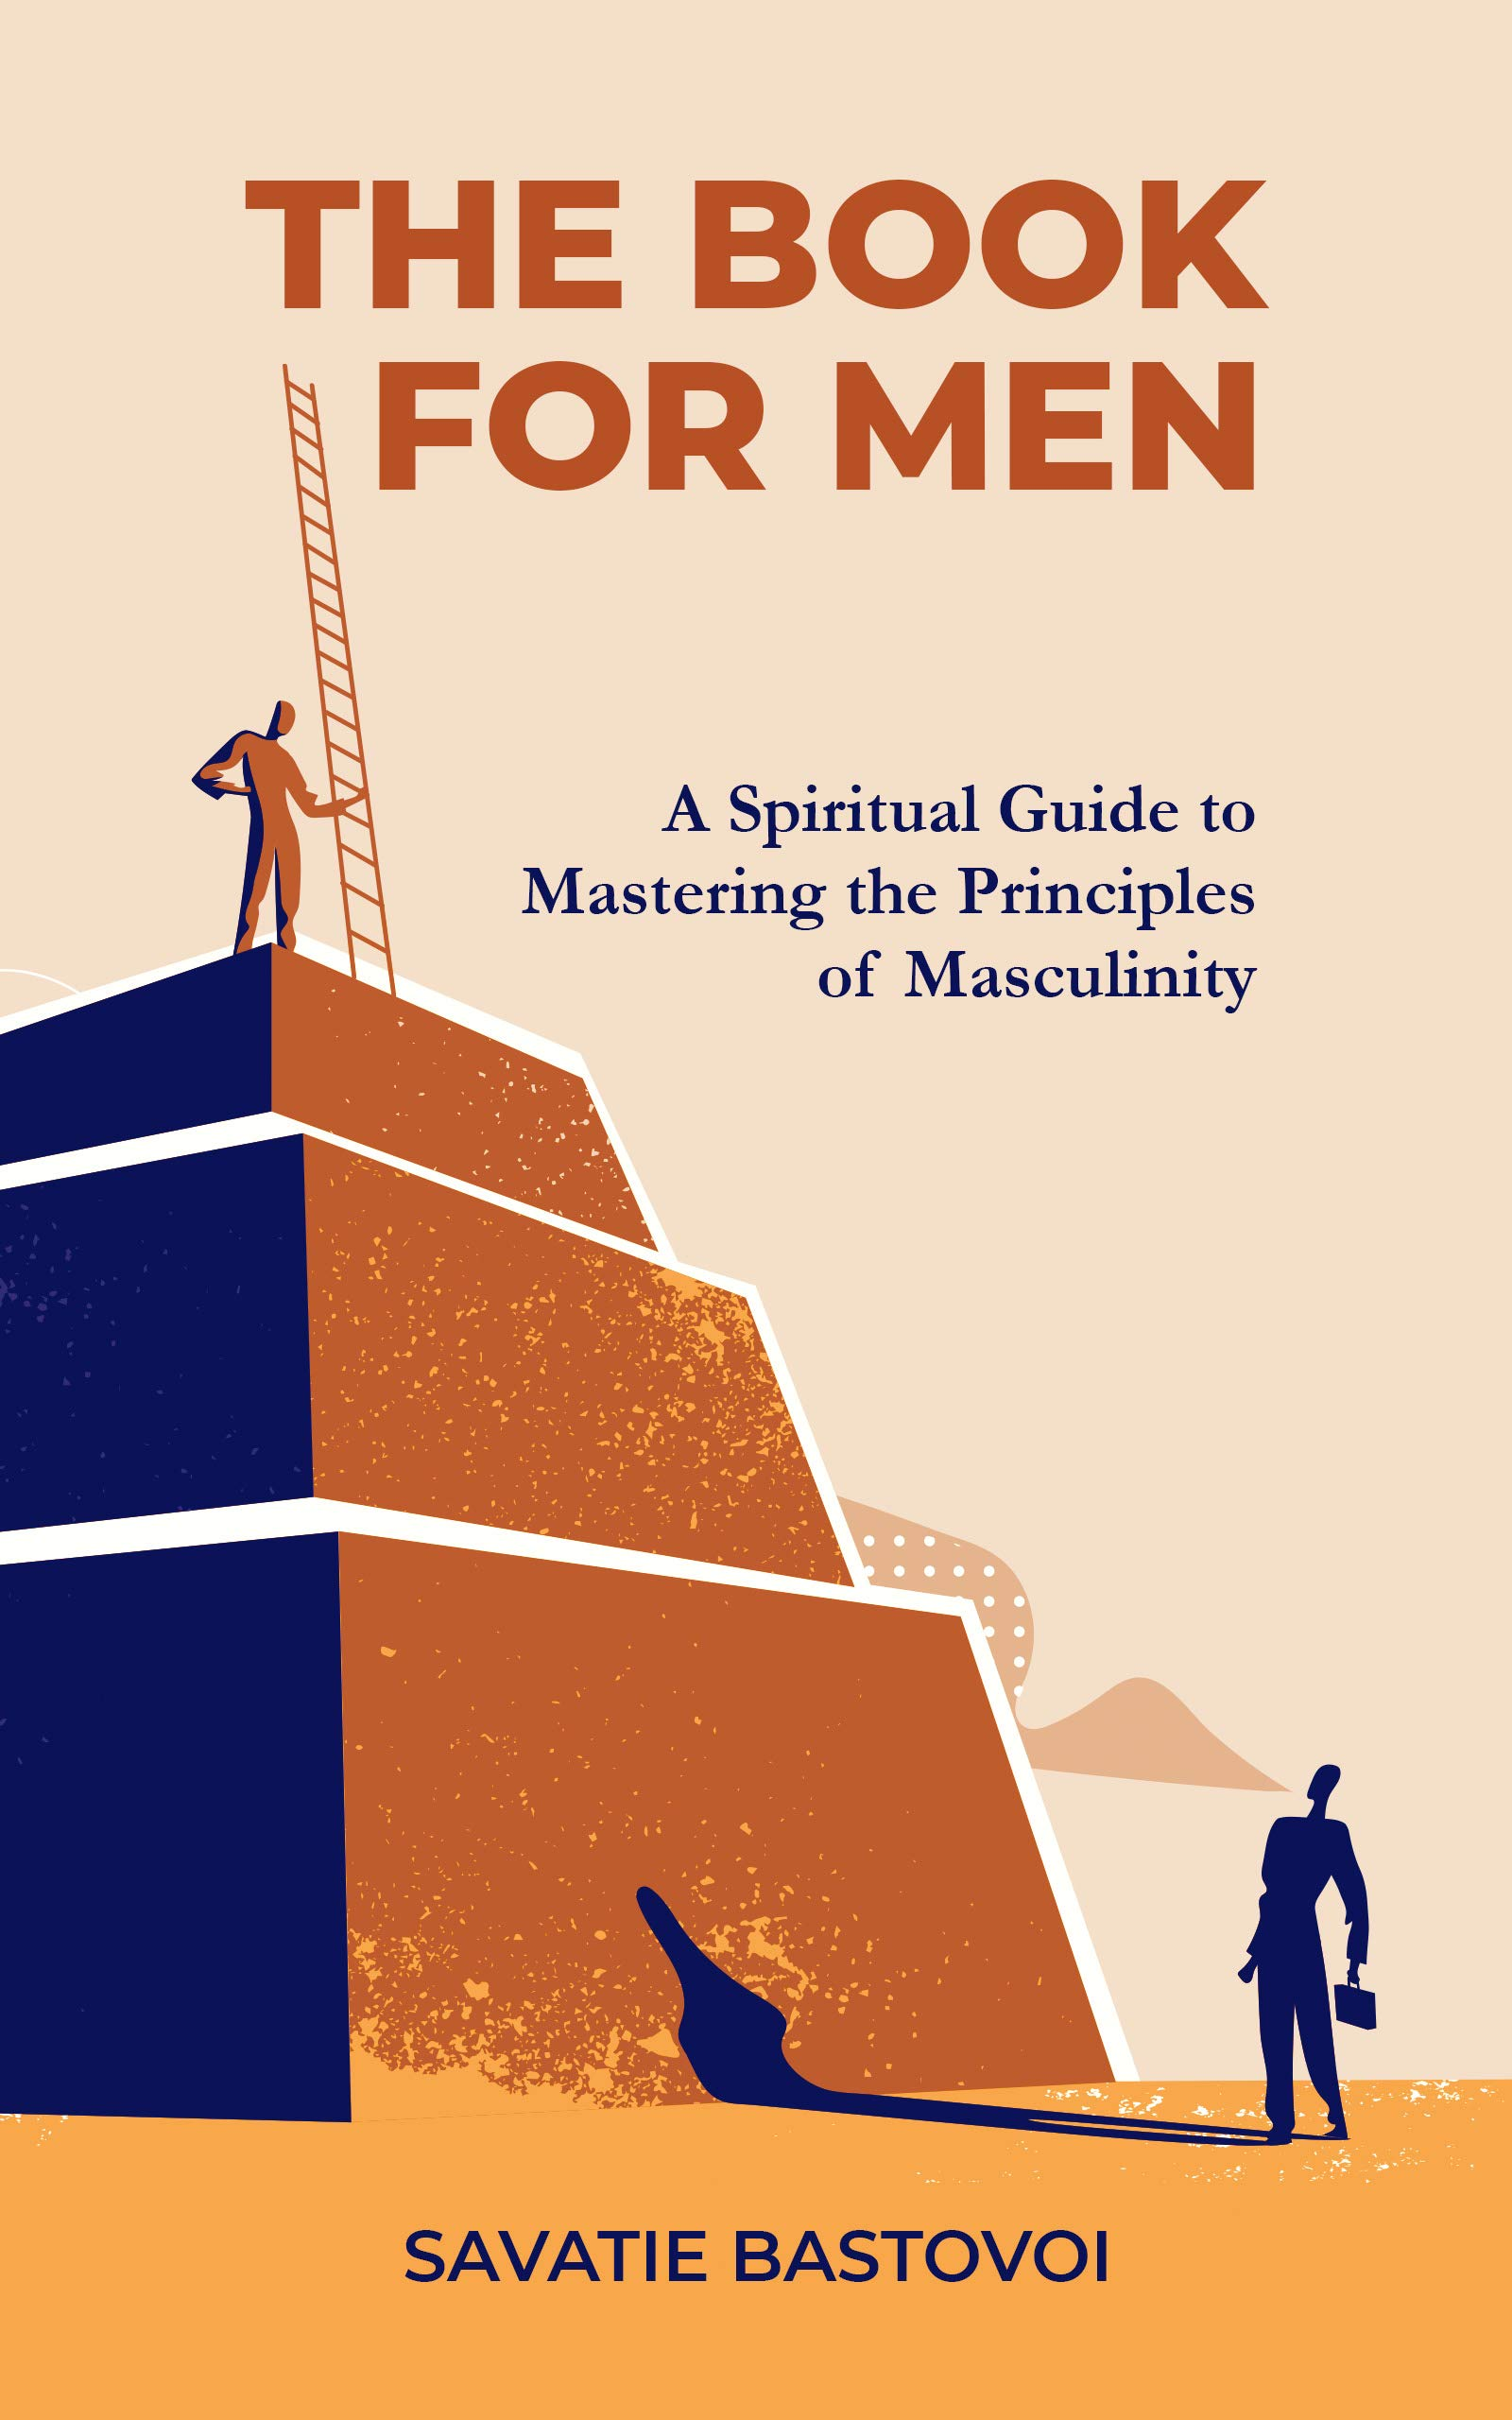 The Book For Men: A Spiritual Guide to Mastering the Principles of Masculinity